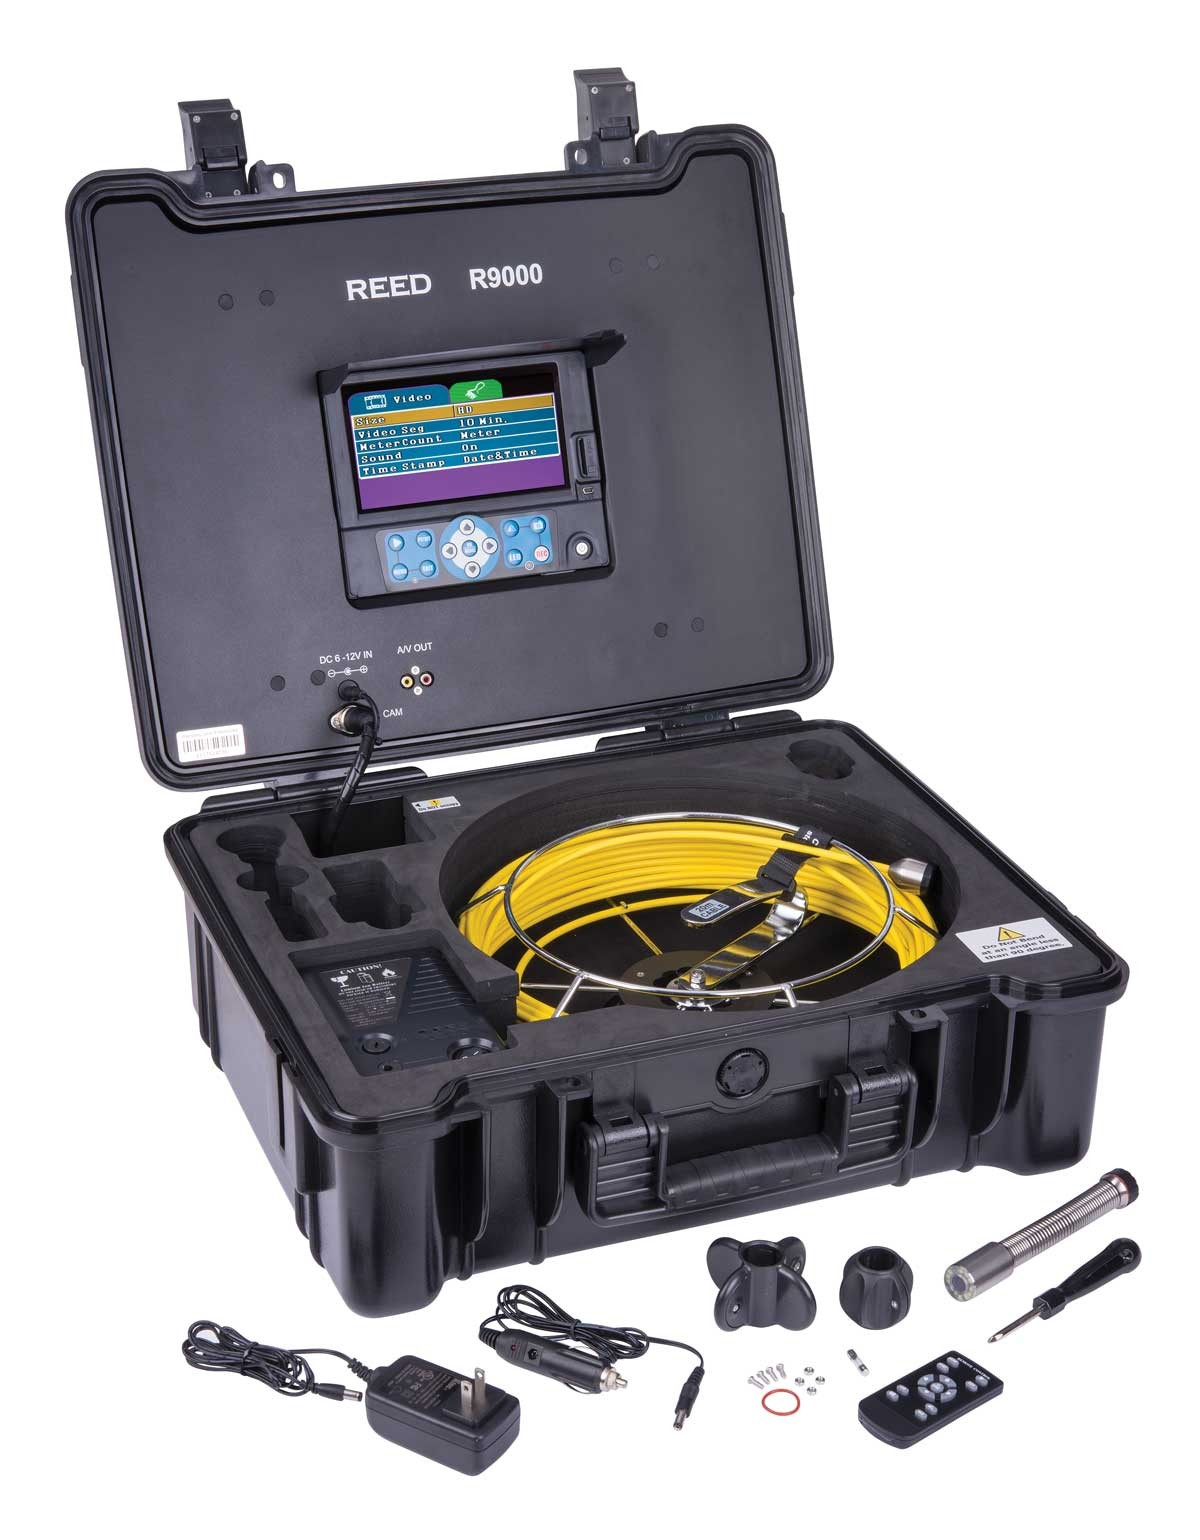 REED R9000 HD Video Inspection Camera System-Included